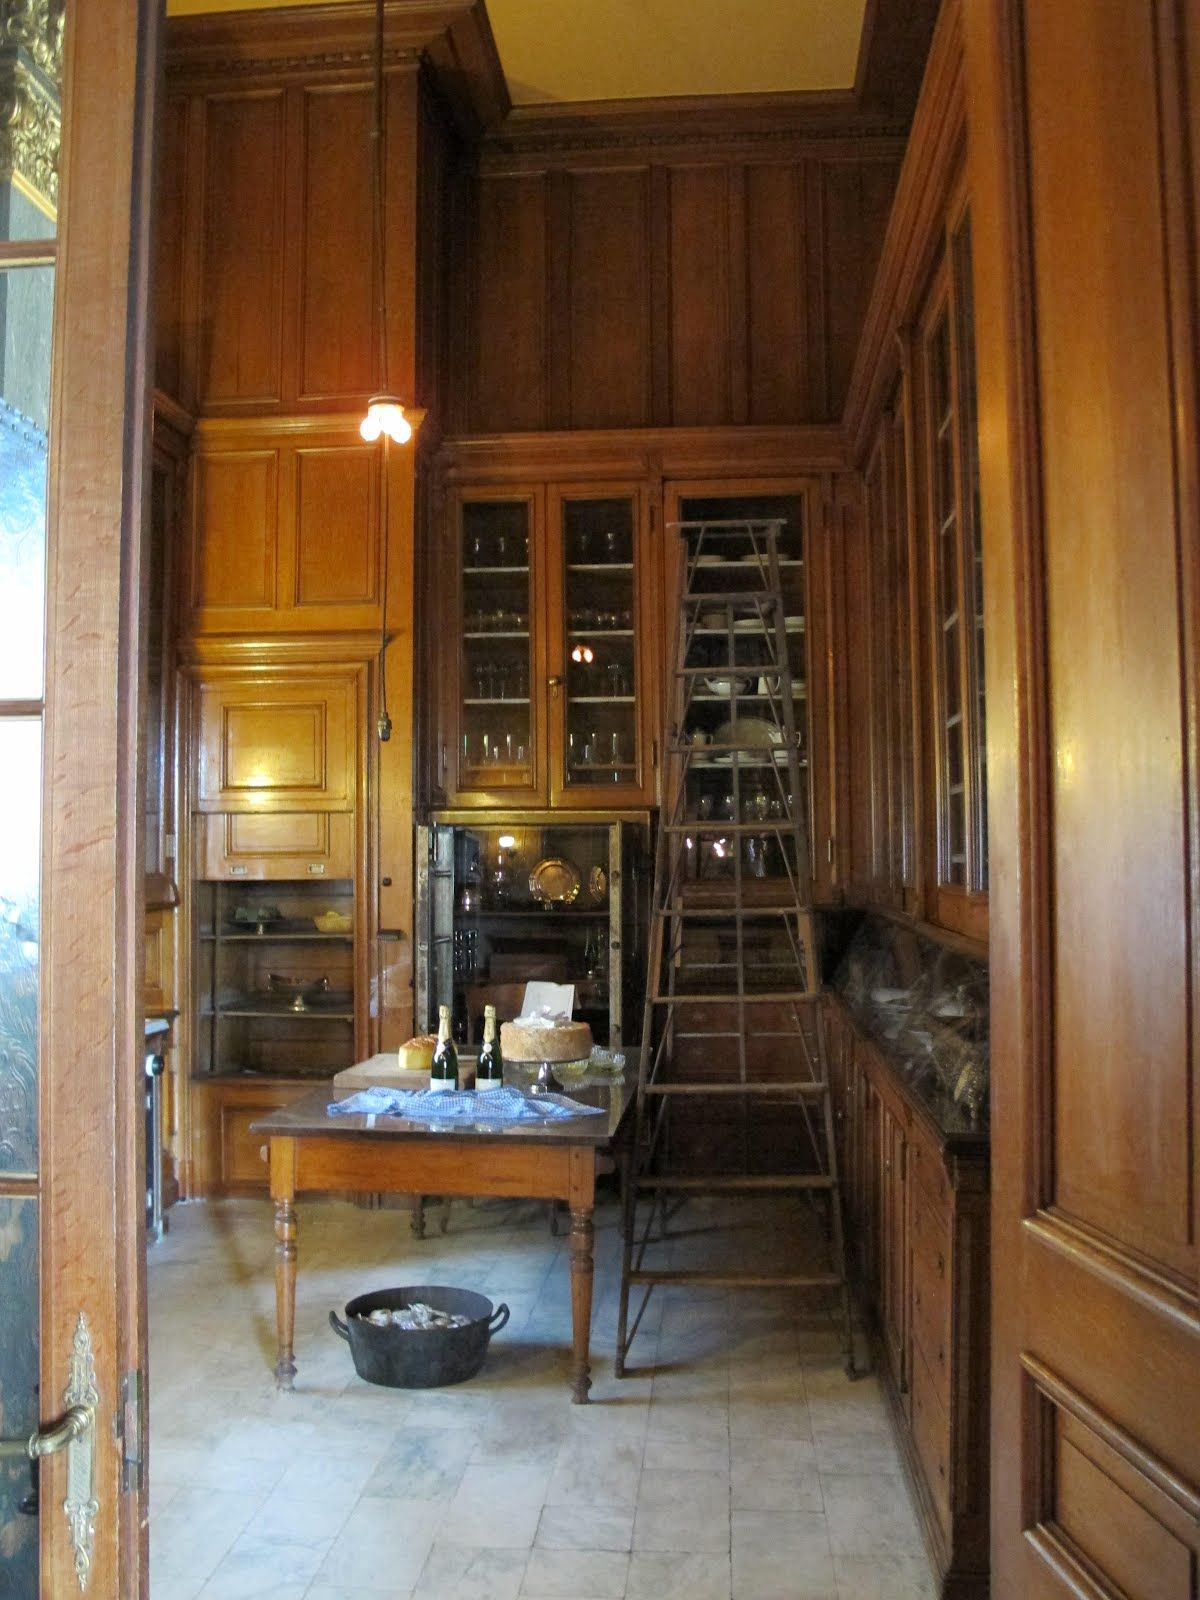 In Love - Real Butler' Pantry Kitchens Forum